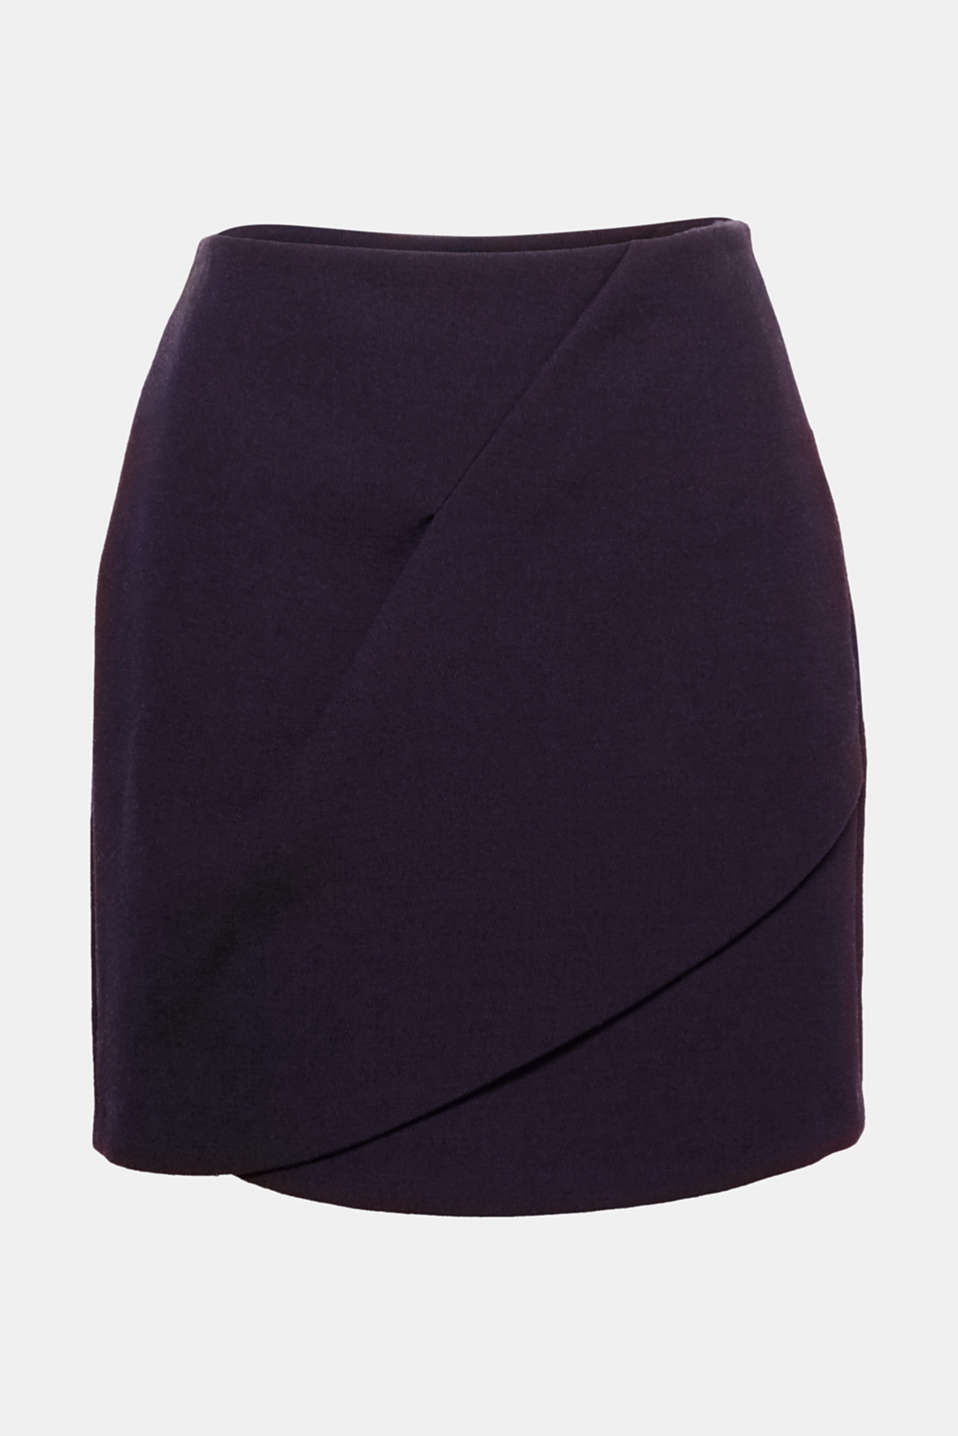 The decorative, fixed wrap-over effect on the front gives this finely textured mini skirt in firm fabric with stretch for comfort its sophisticated look.